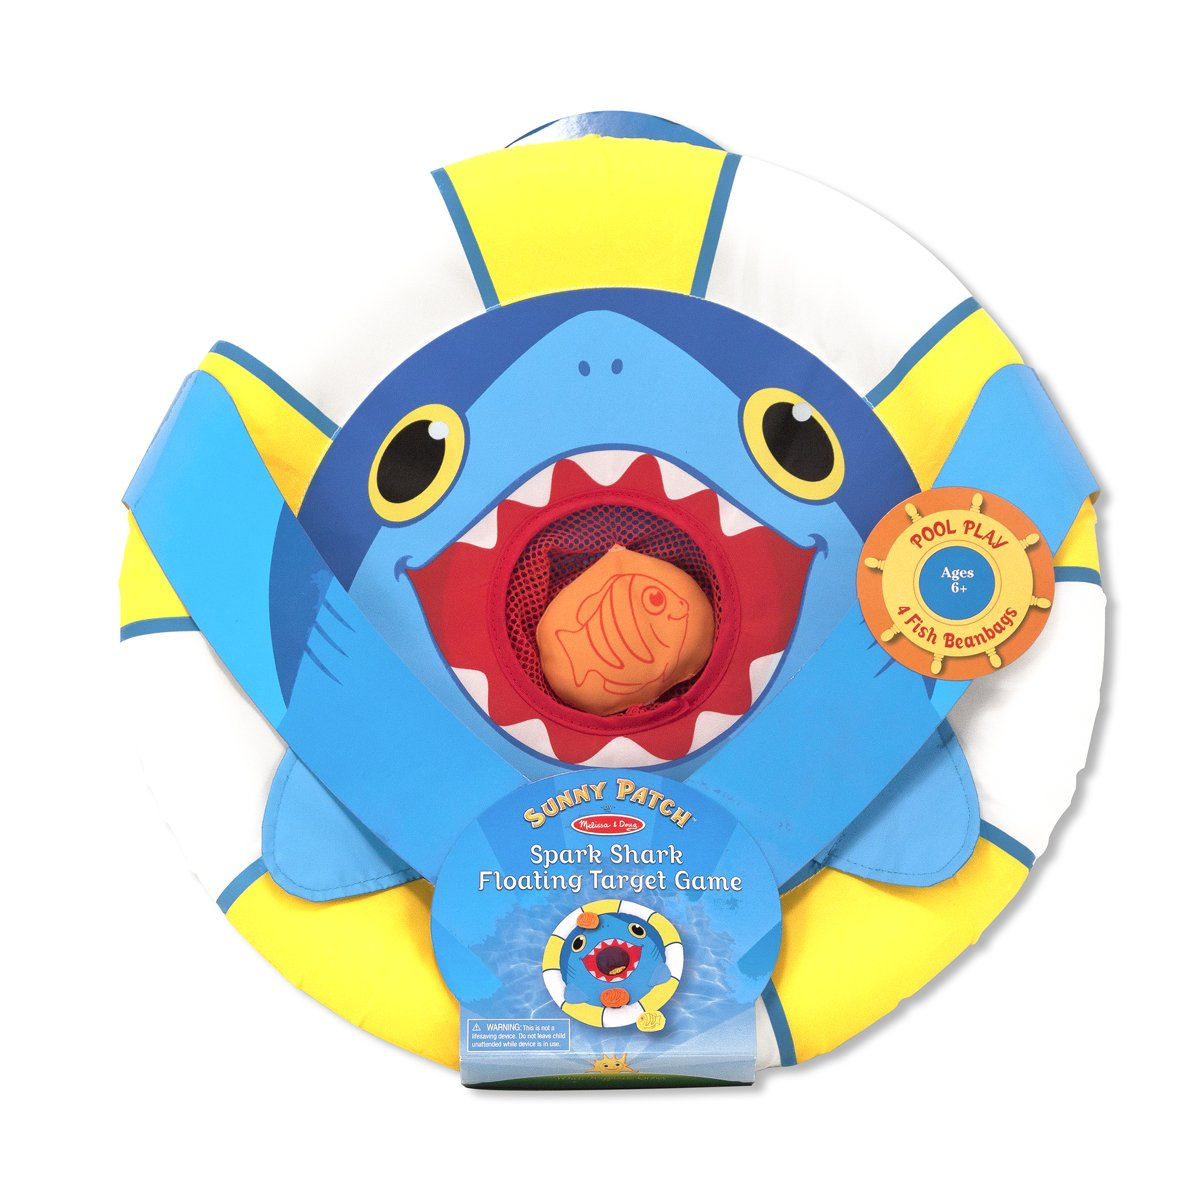 Melissa & Doug Sunny Patch Spark Shark Floating Target Game by Melissa & Doug